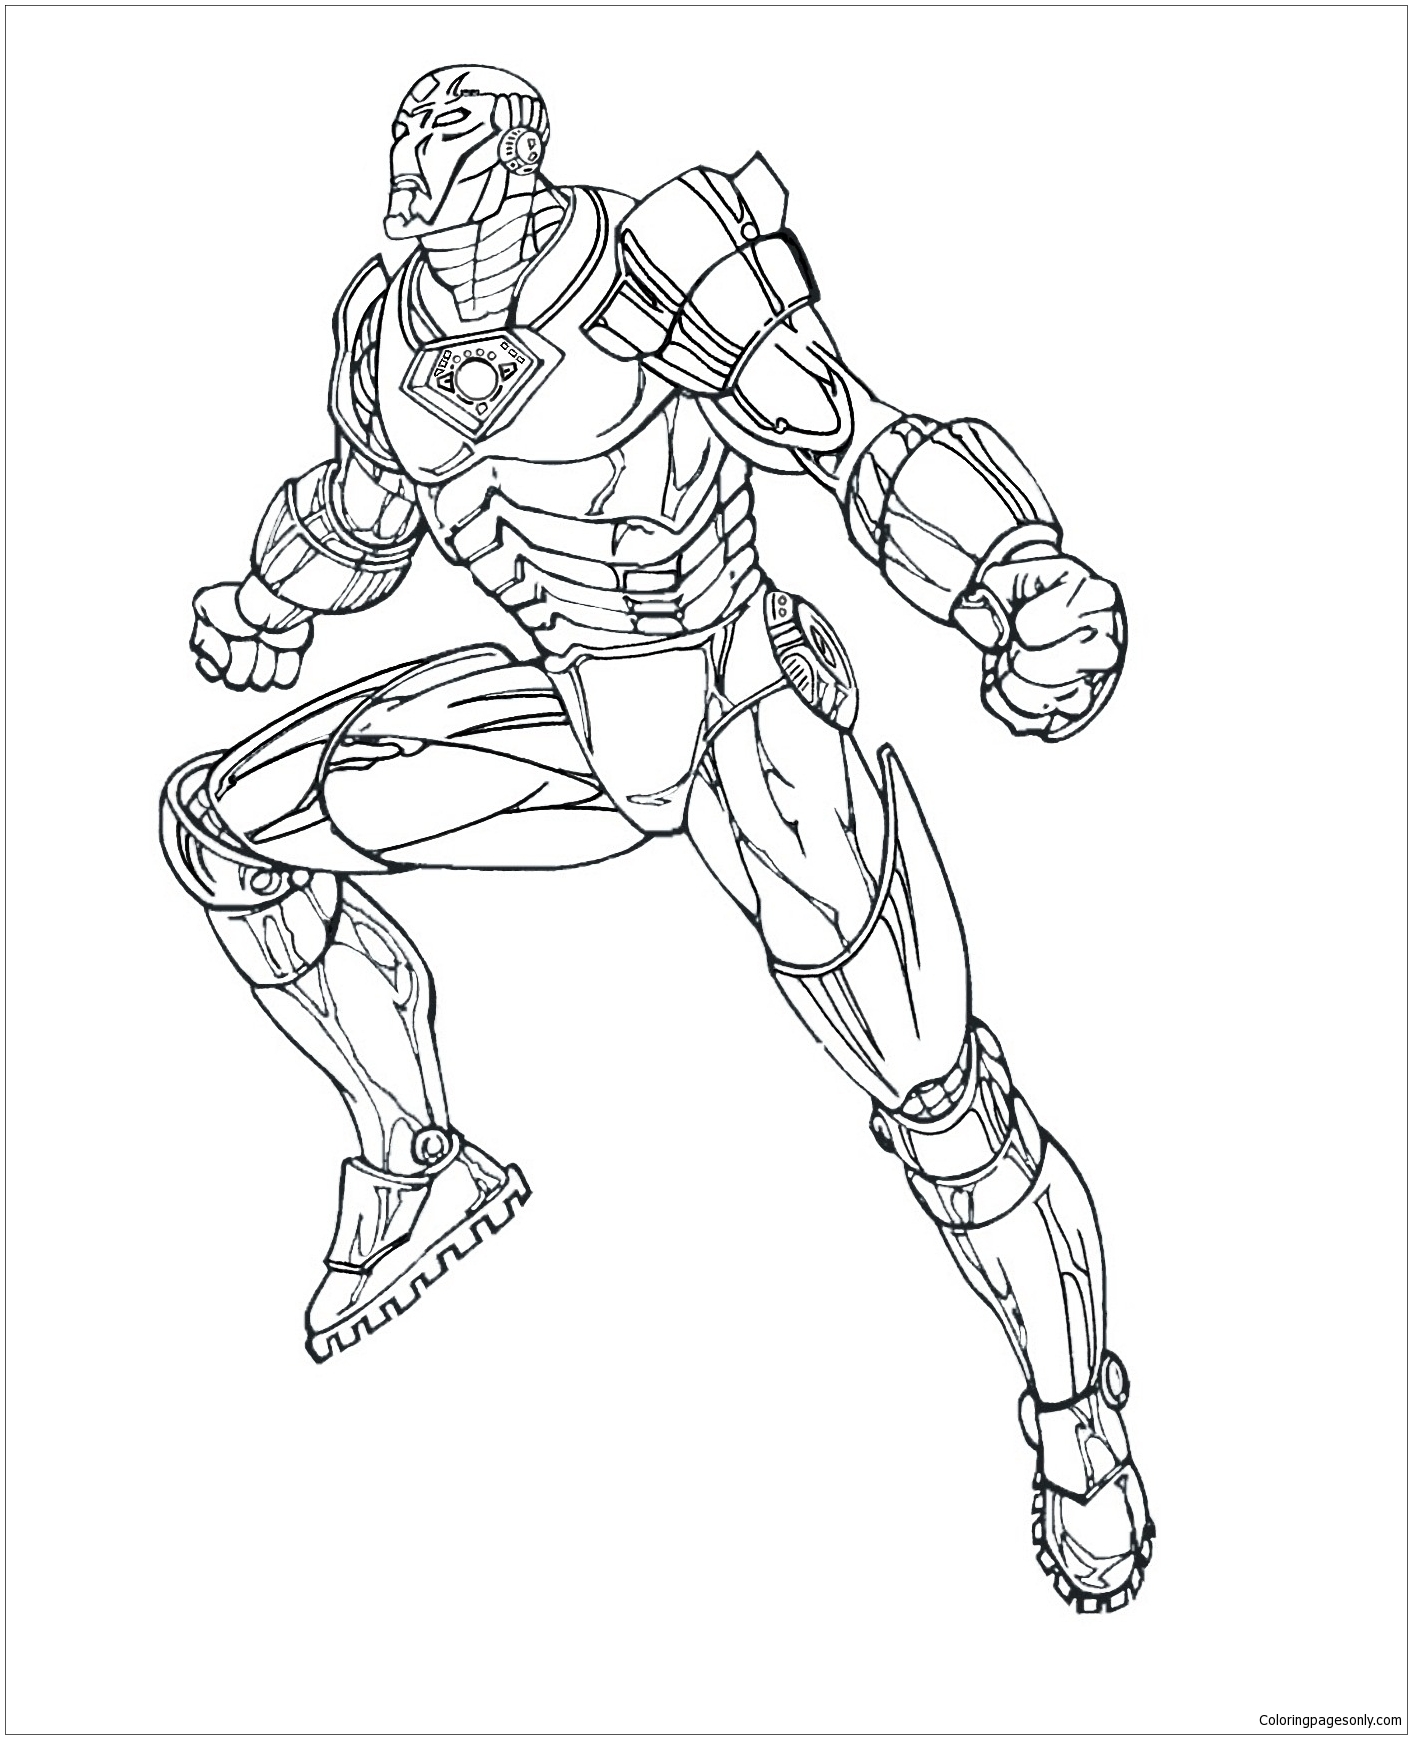 Iron Man Coloring Page - Free Coloring Pages Online